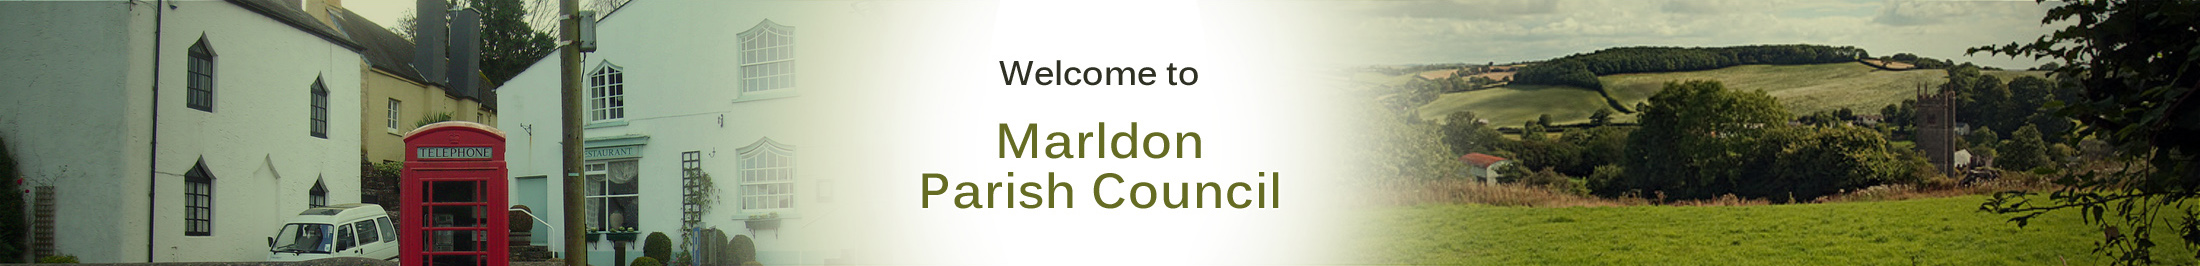 Header Image for Marldon Parish Council